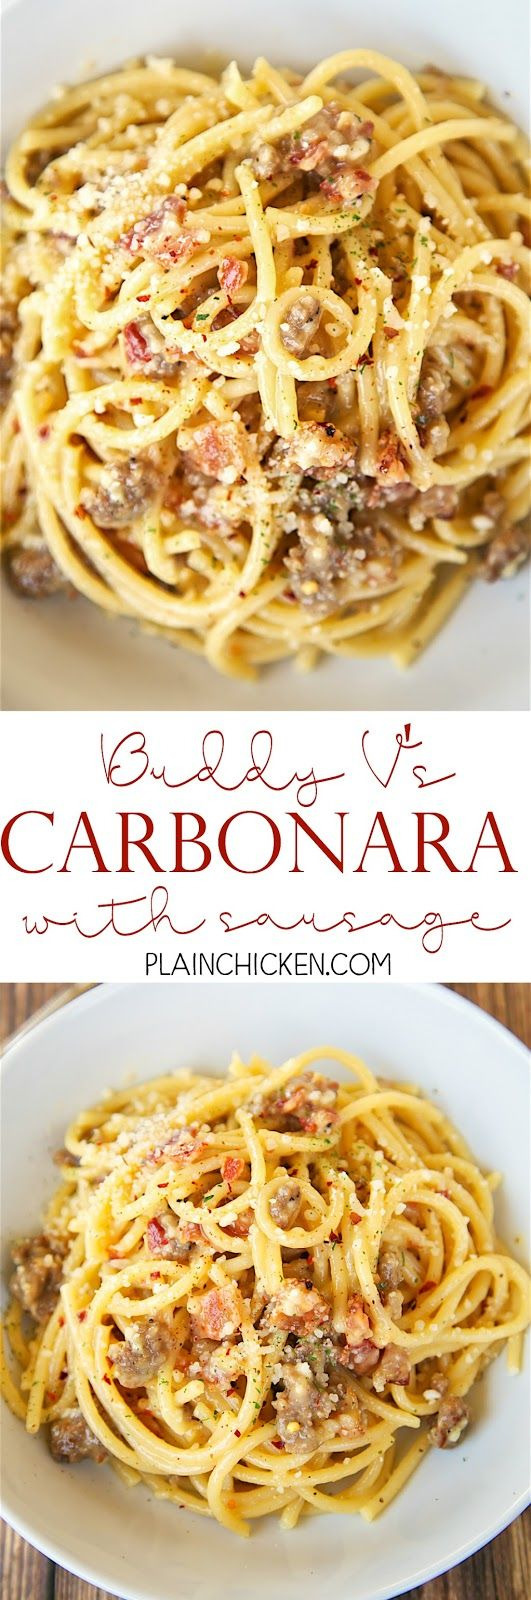 Blue apron bucatini - Bucatini Carbonara With Sausage Recipe From Buddy V S In Las Vegas So Easy To